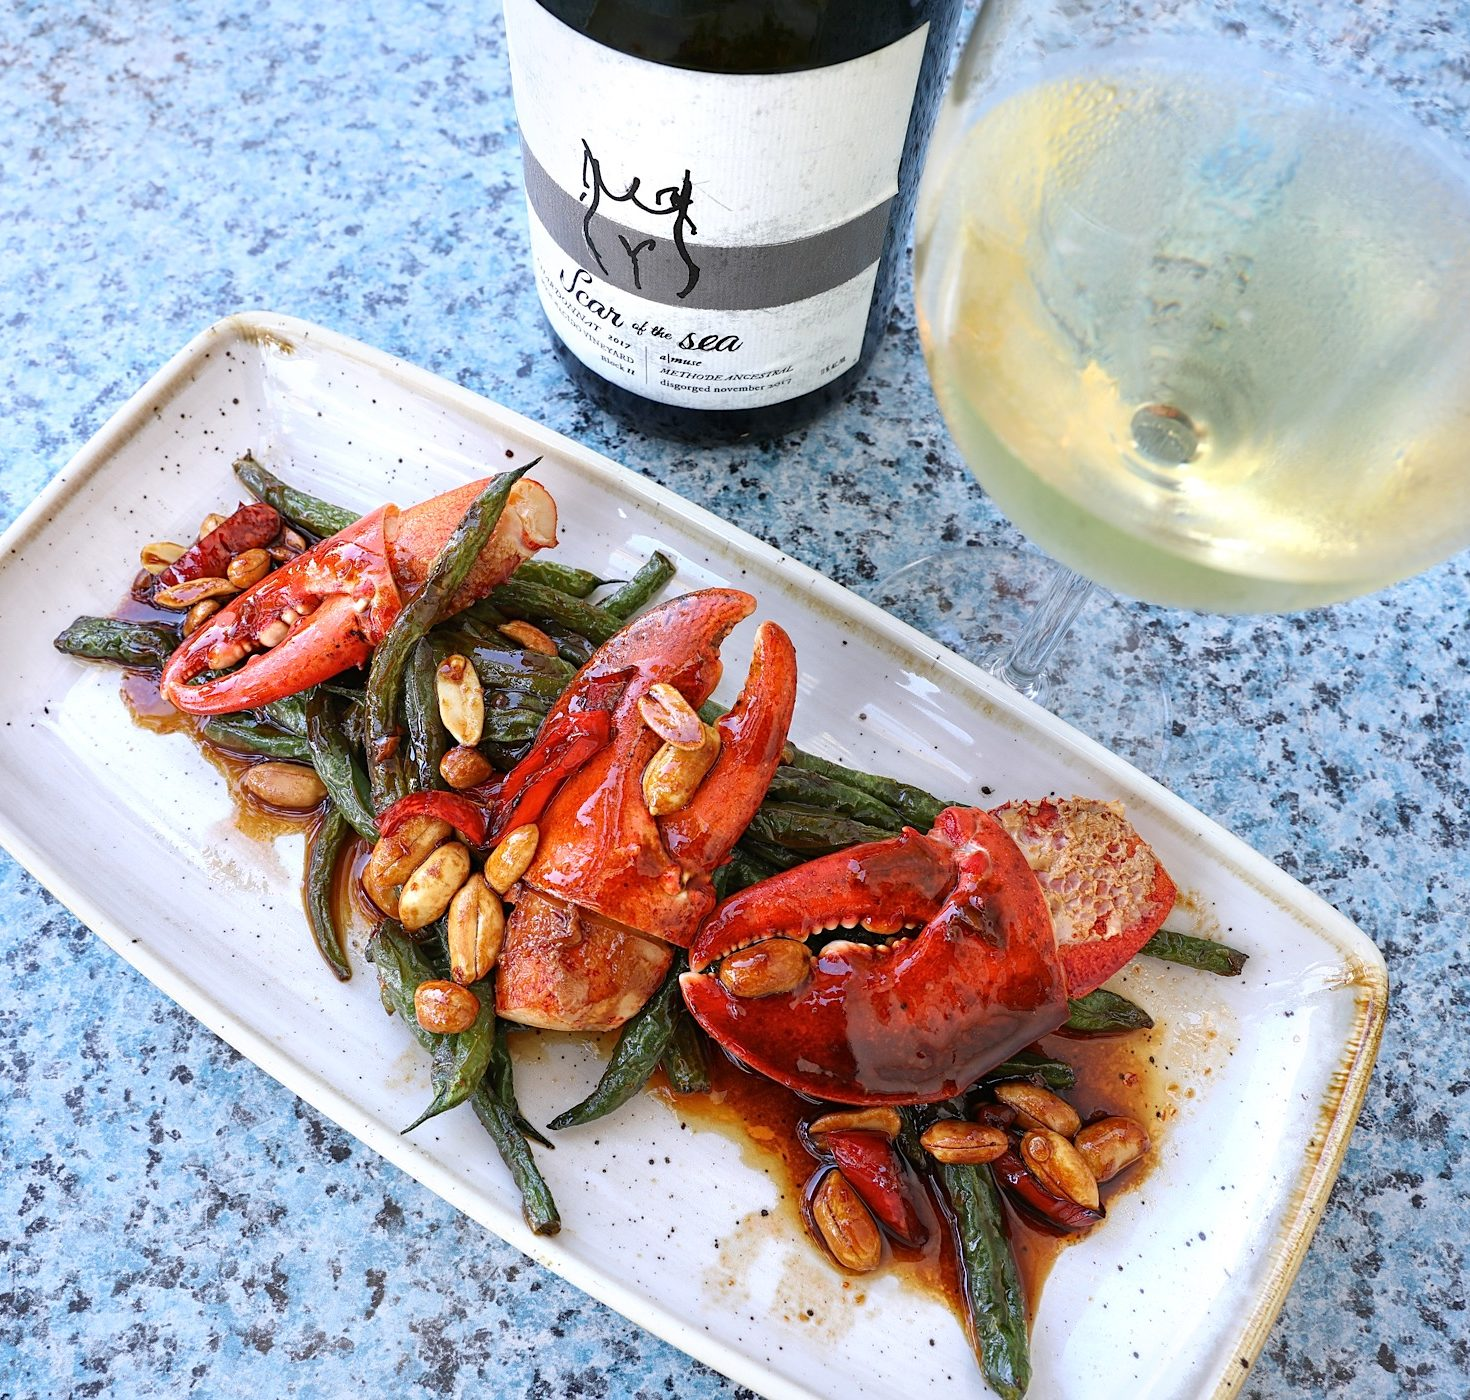 Lobster Claws and Szechuan Green Beans with 2015 Bien Nacido Scar of the Sea Sparkling Chardonnay at The Fishery